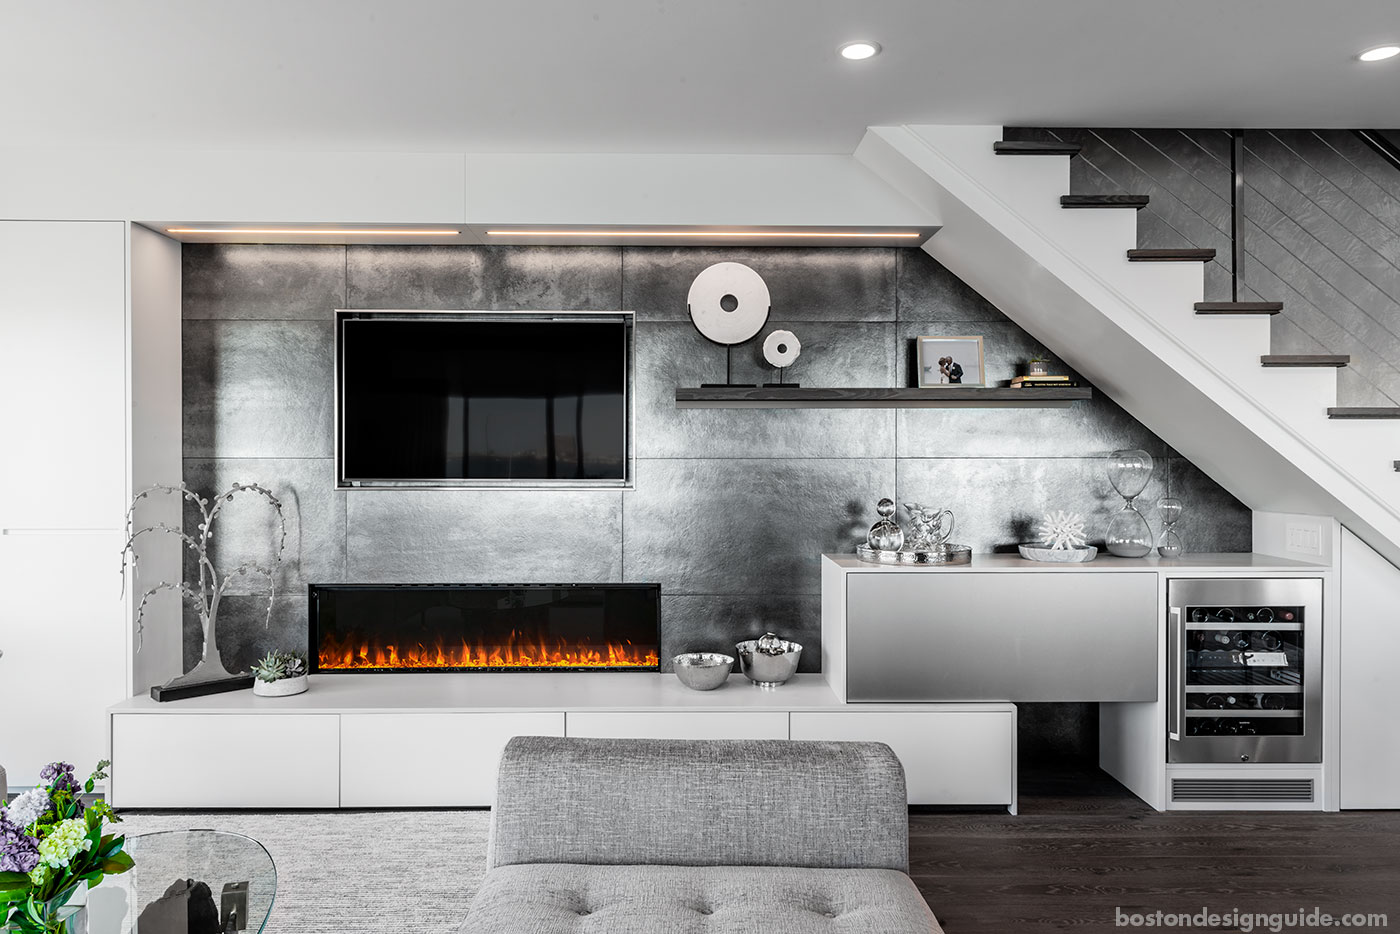 Fireplace feature wall for a Boston townhouse by Divine Design Center